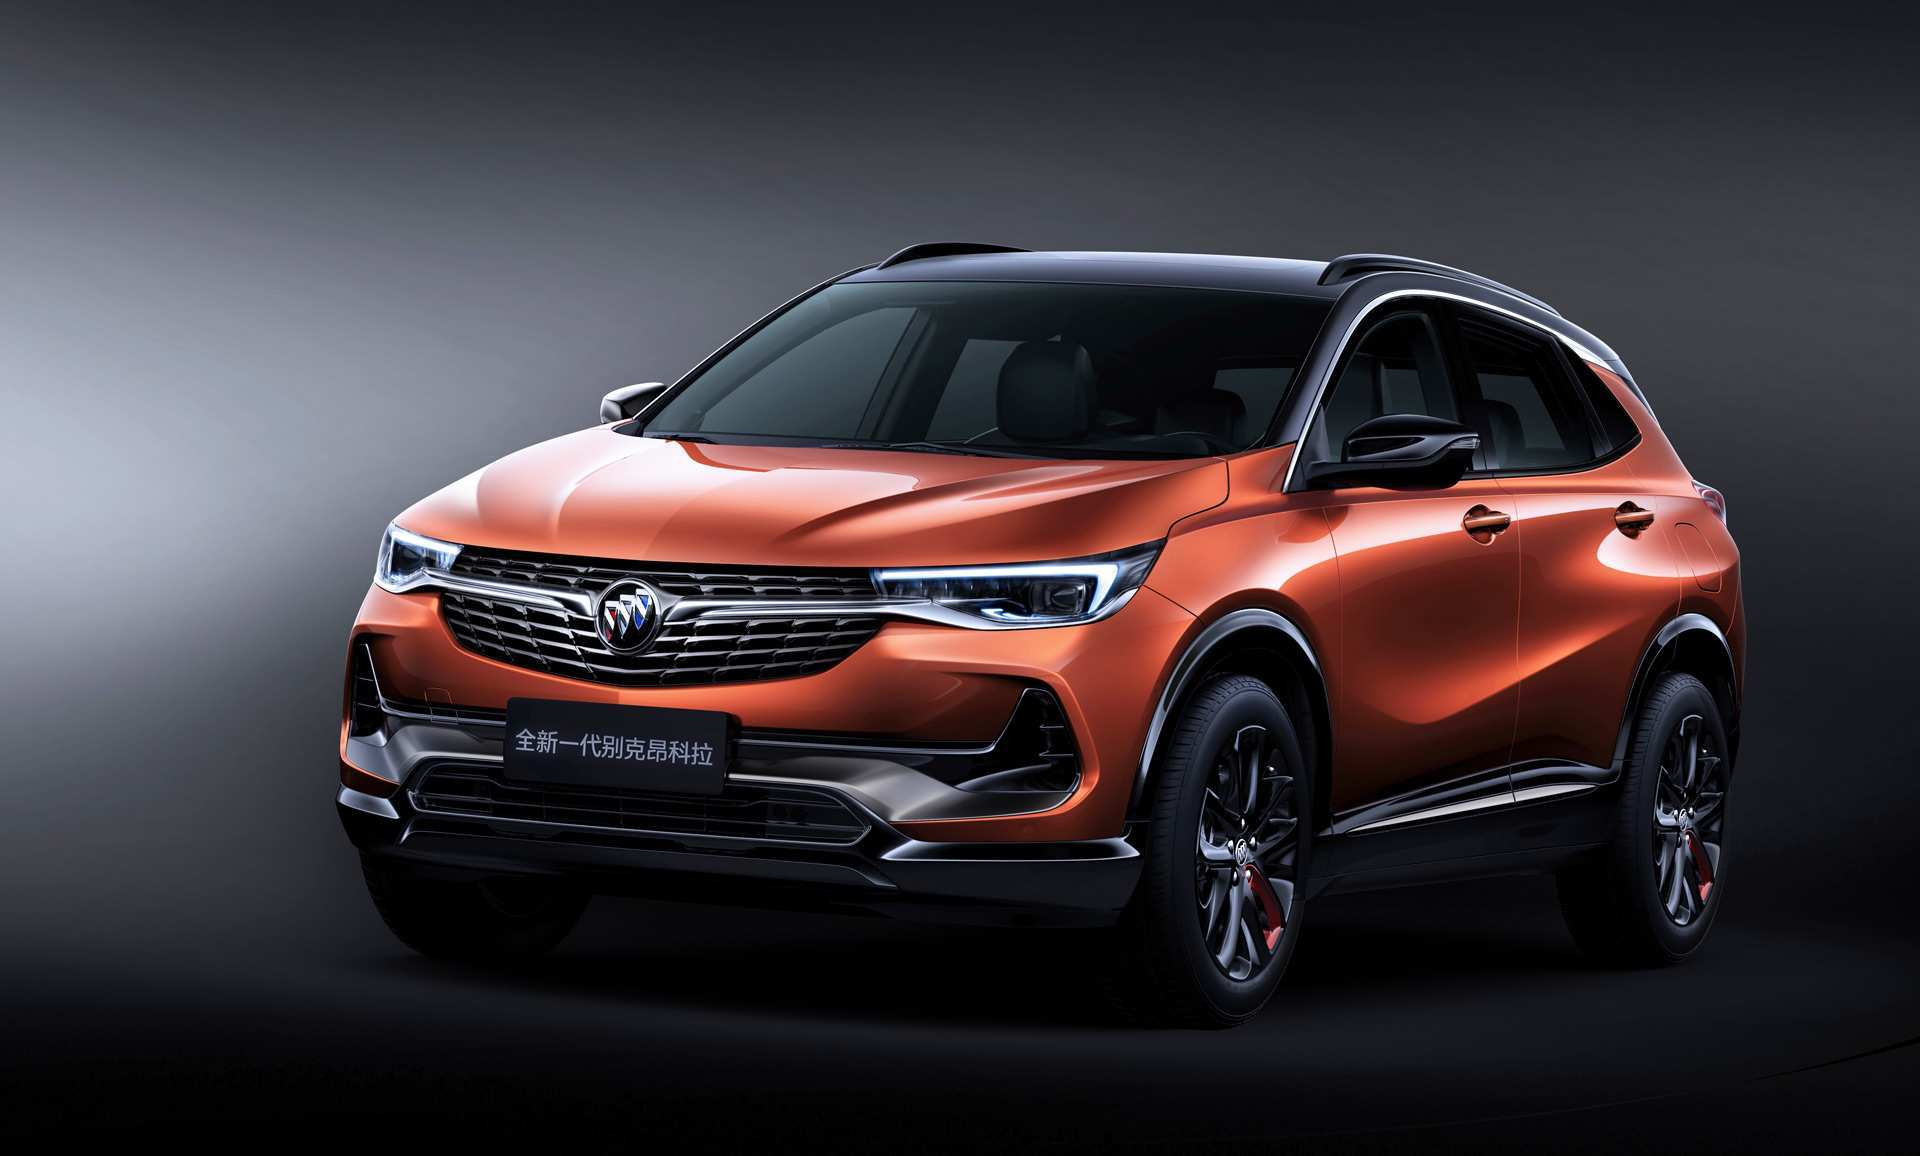 74 All New When Does 2020 Buick Encore Come Out Concept with When Does 2020 Buick Encore Come Out